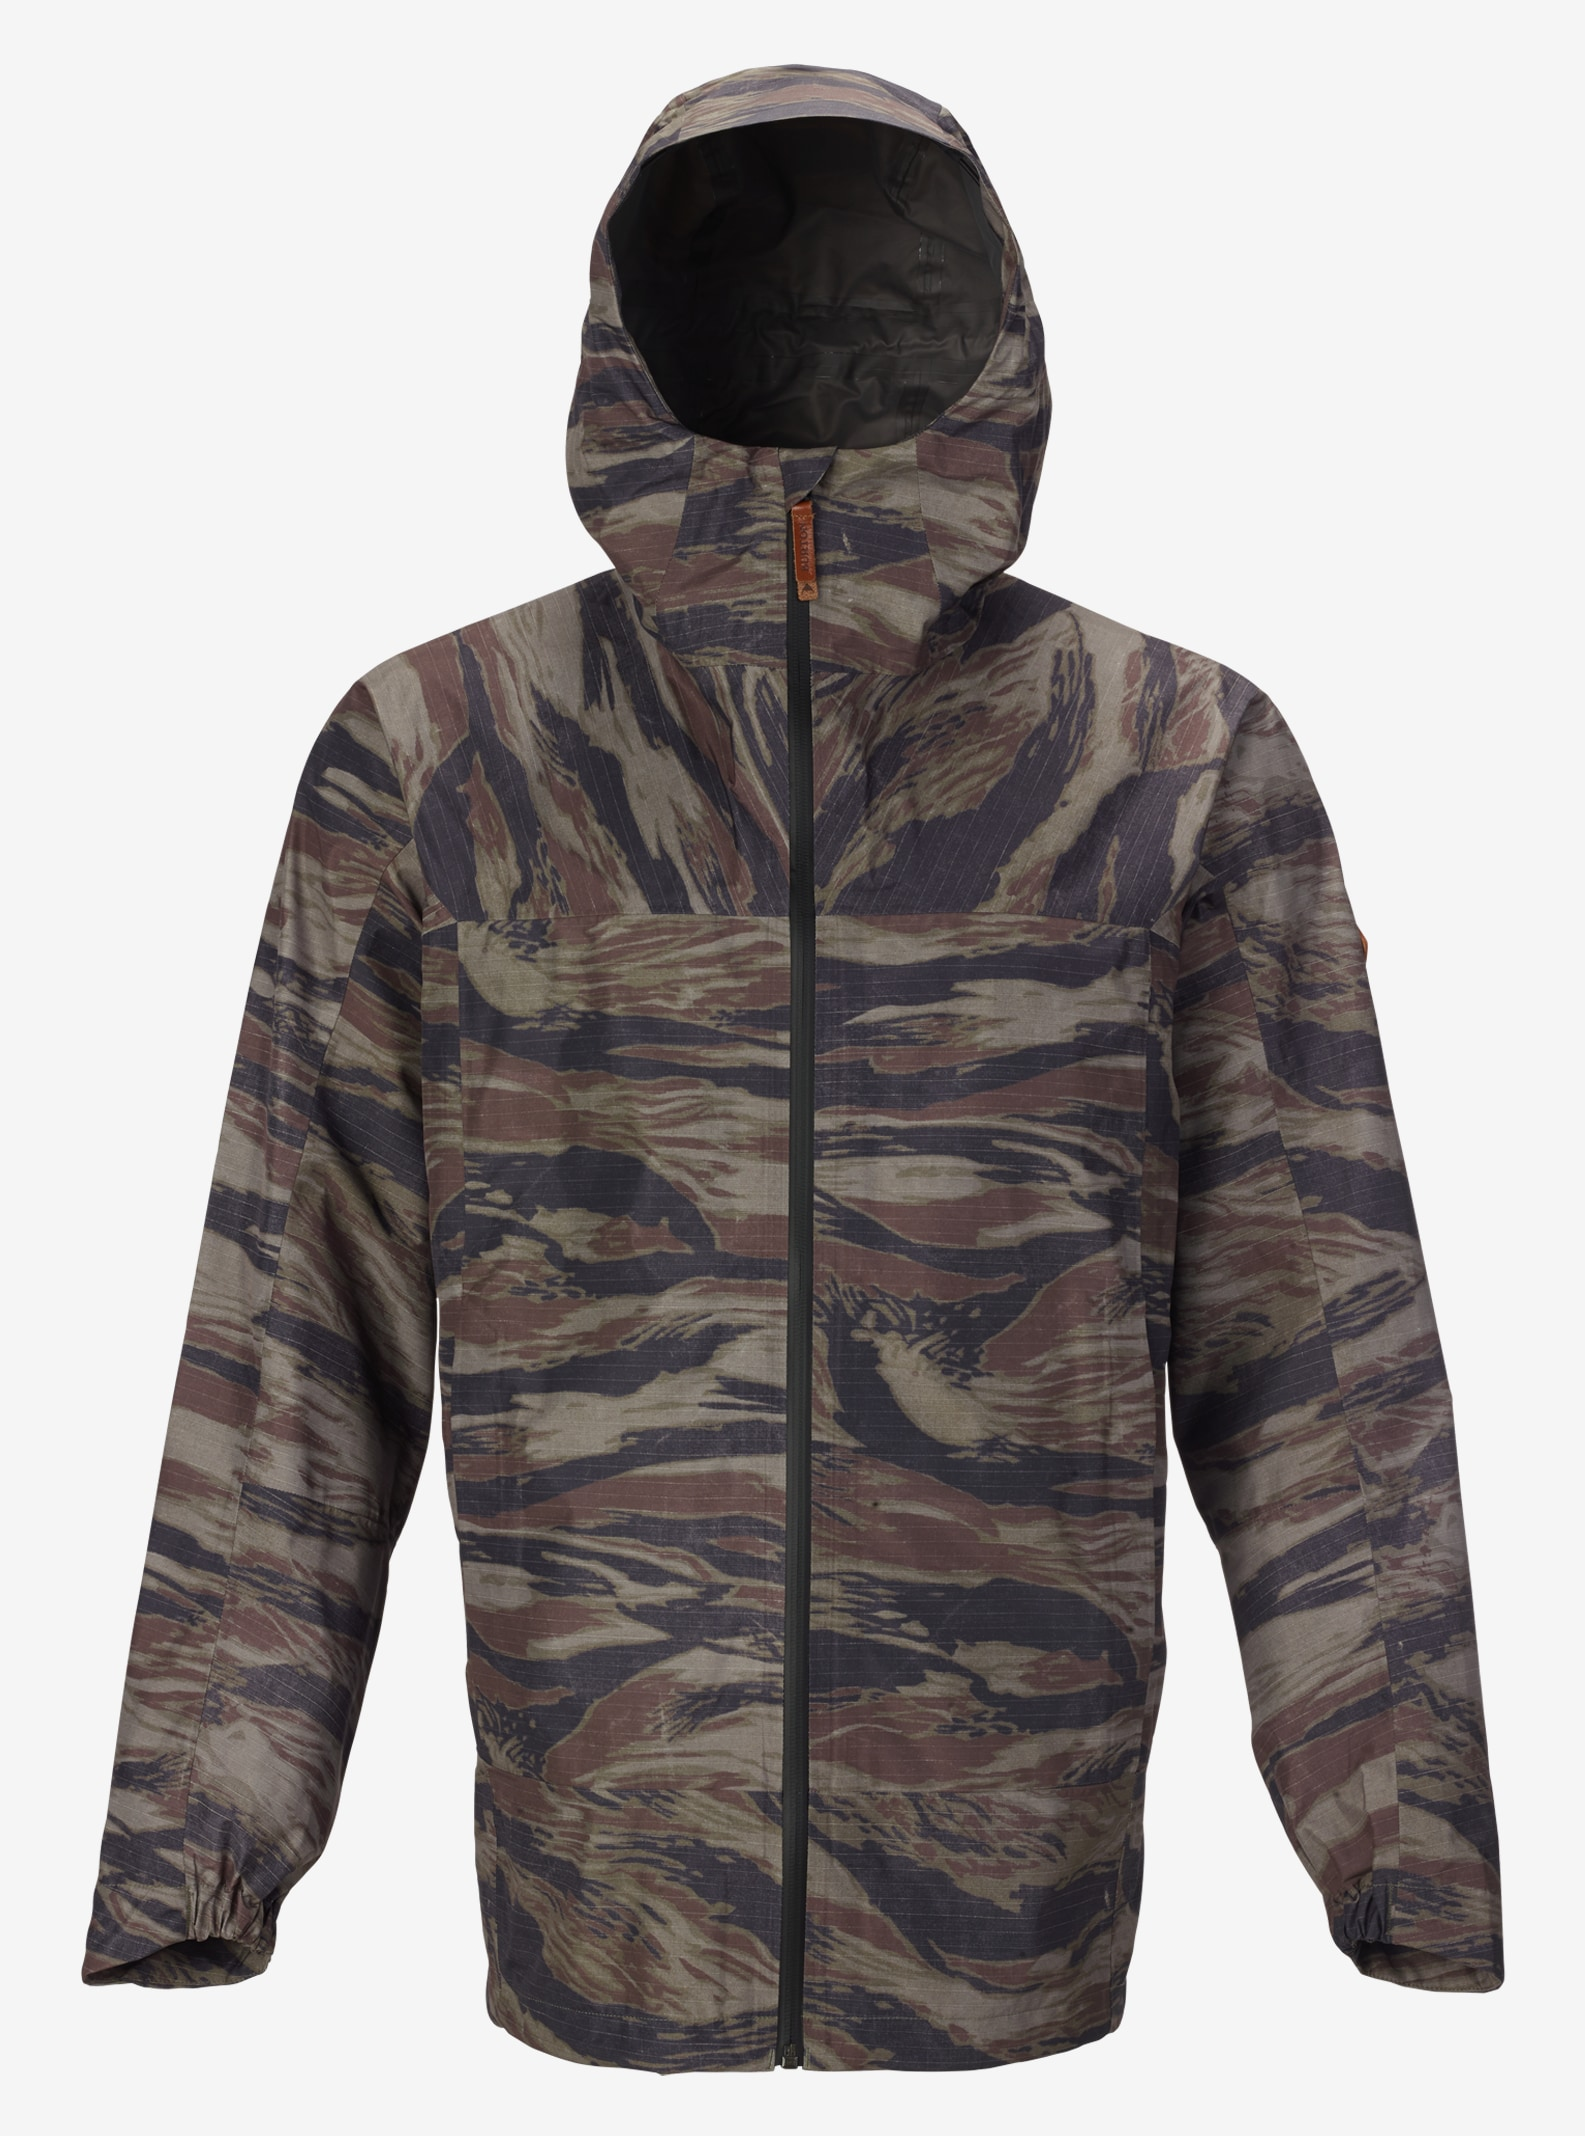 Men's Burton GORE‑TEX® Packrite Jacket shown in Olive Green Worn Tiger